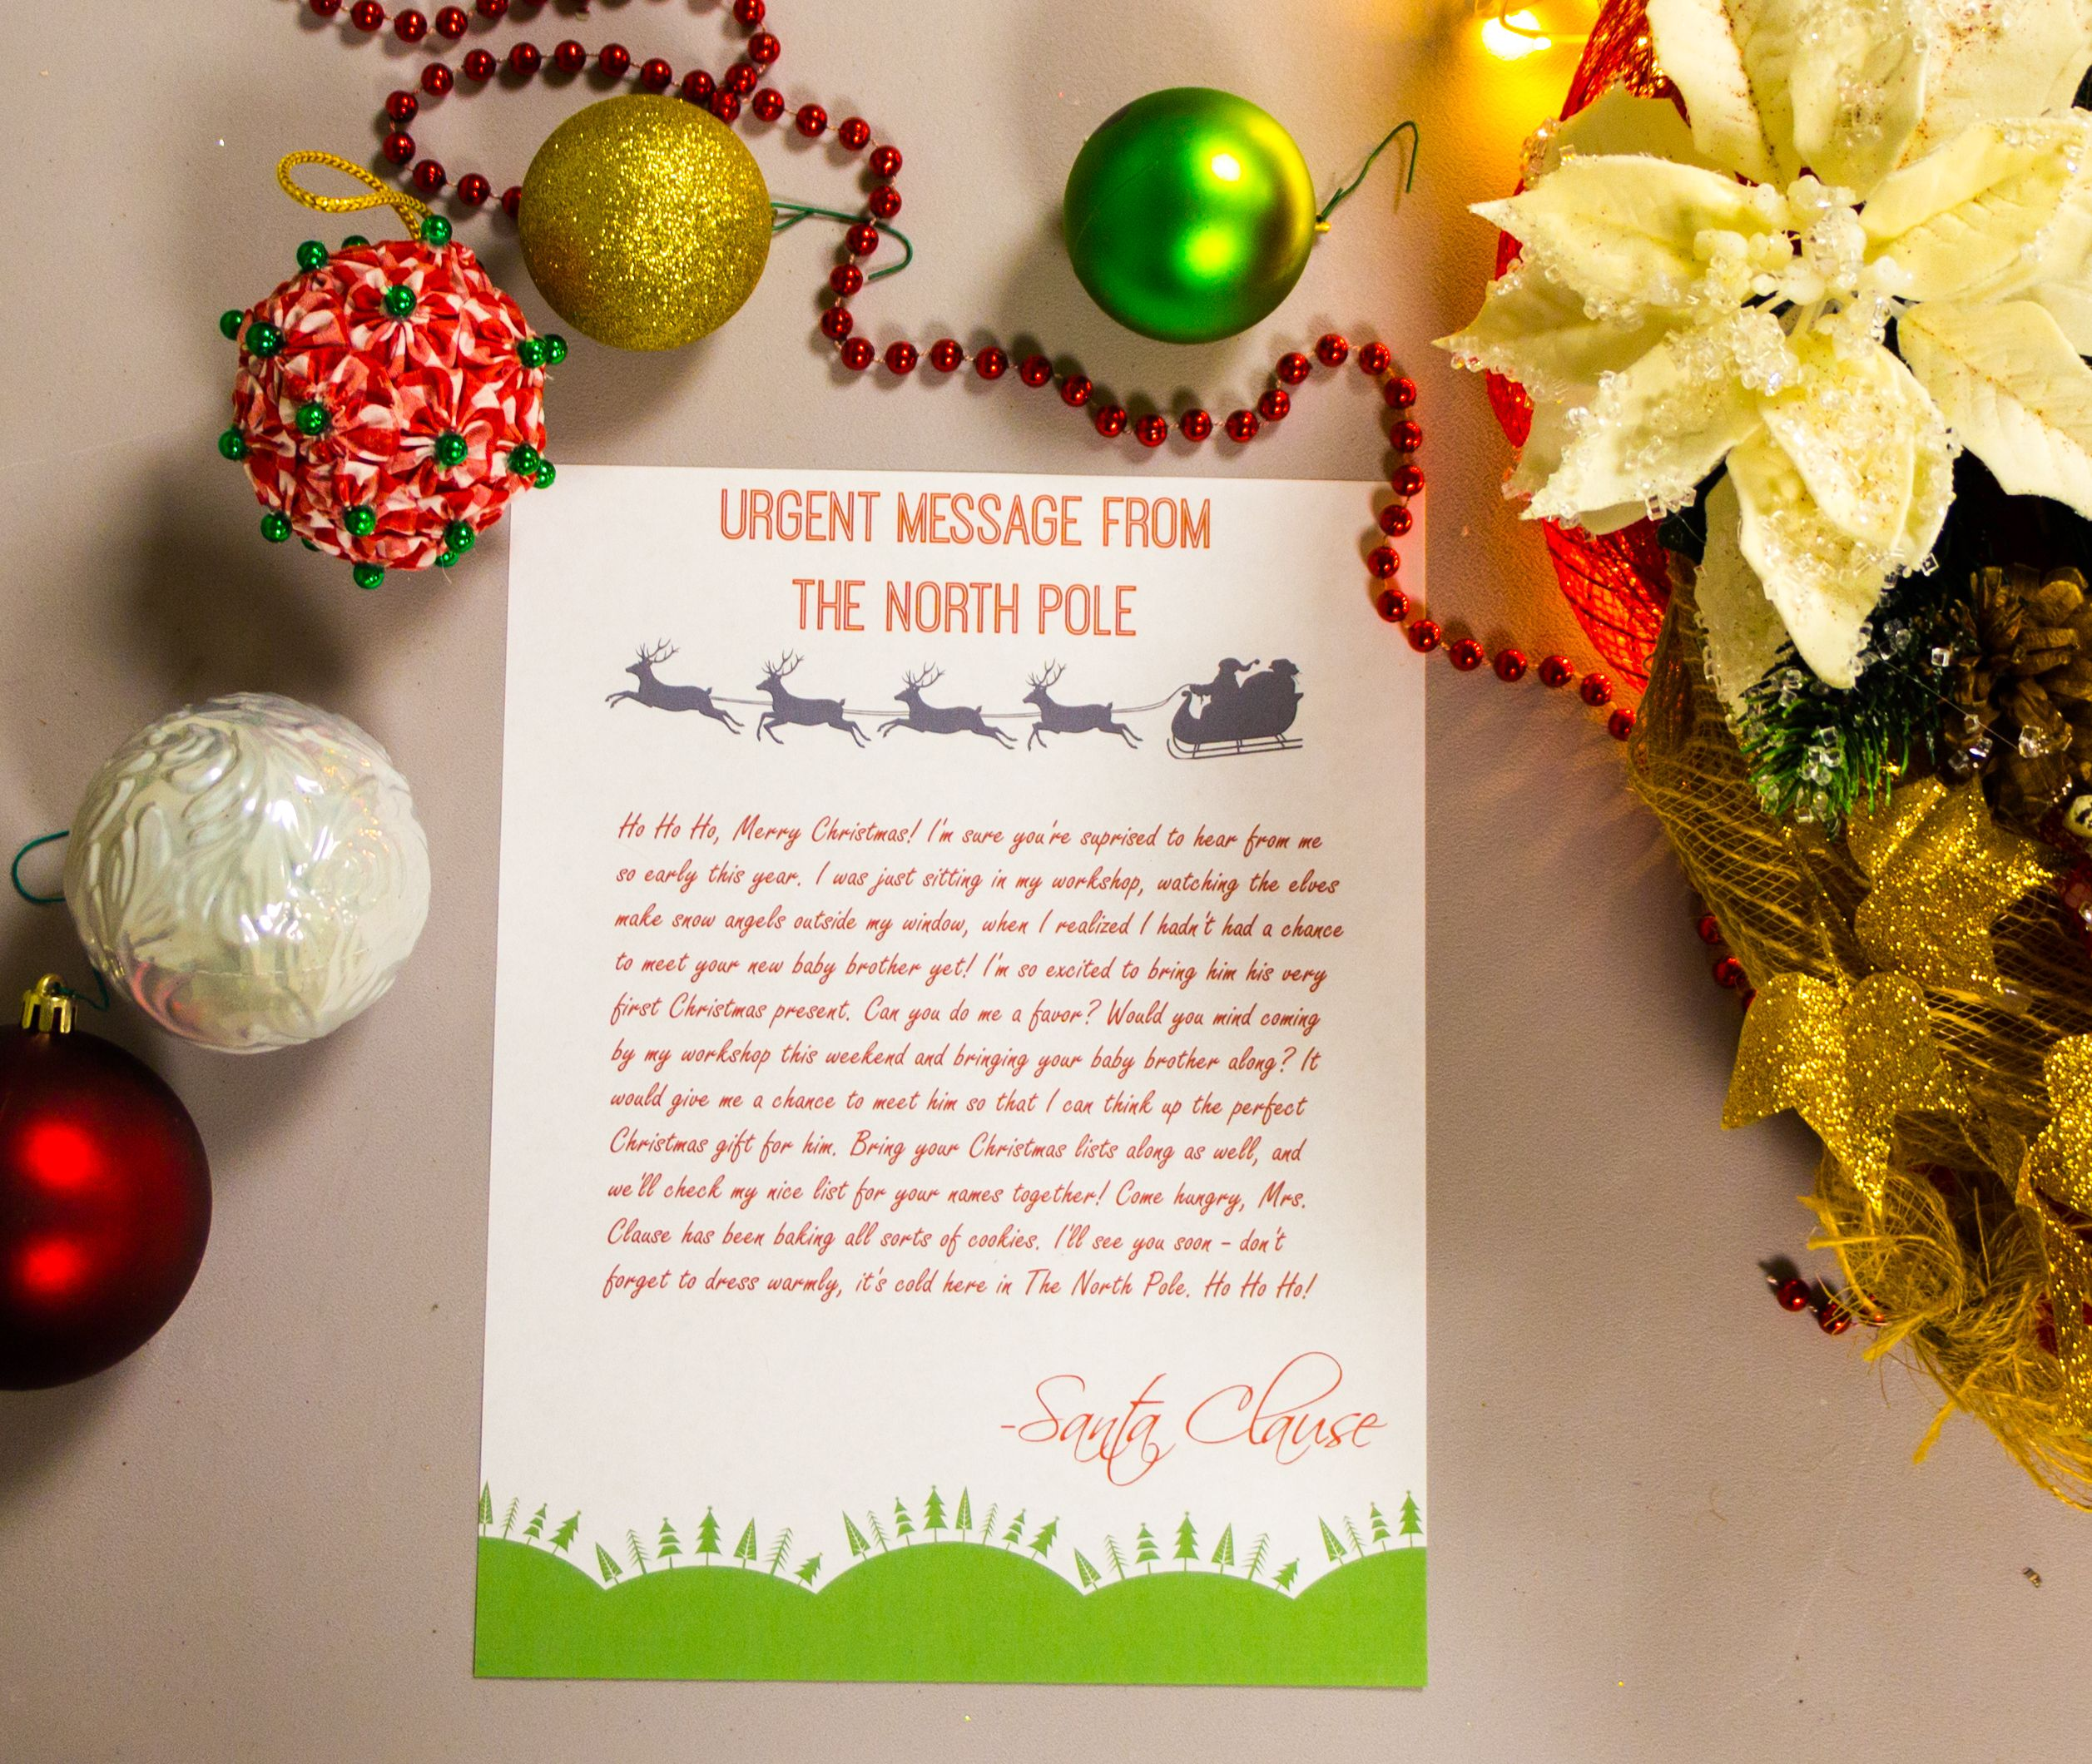 Free Printable Santa Letter  Urgent Message From The North Pole